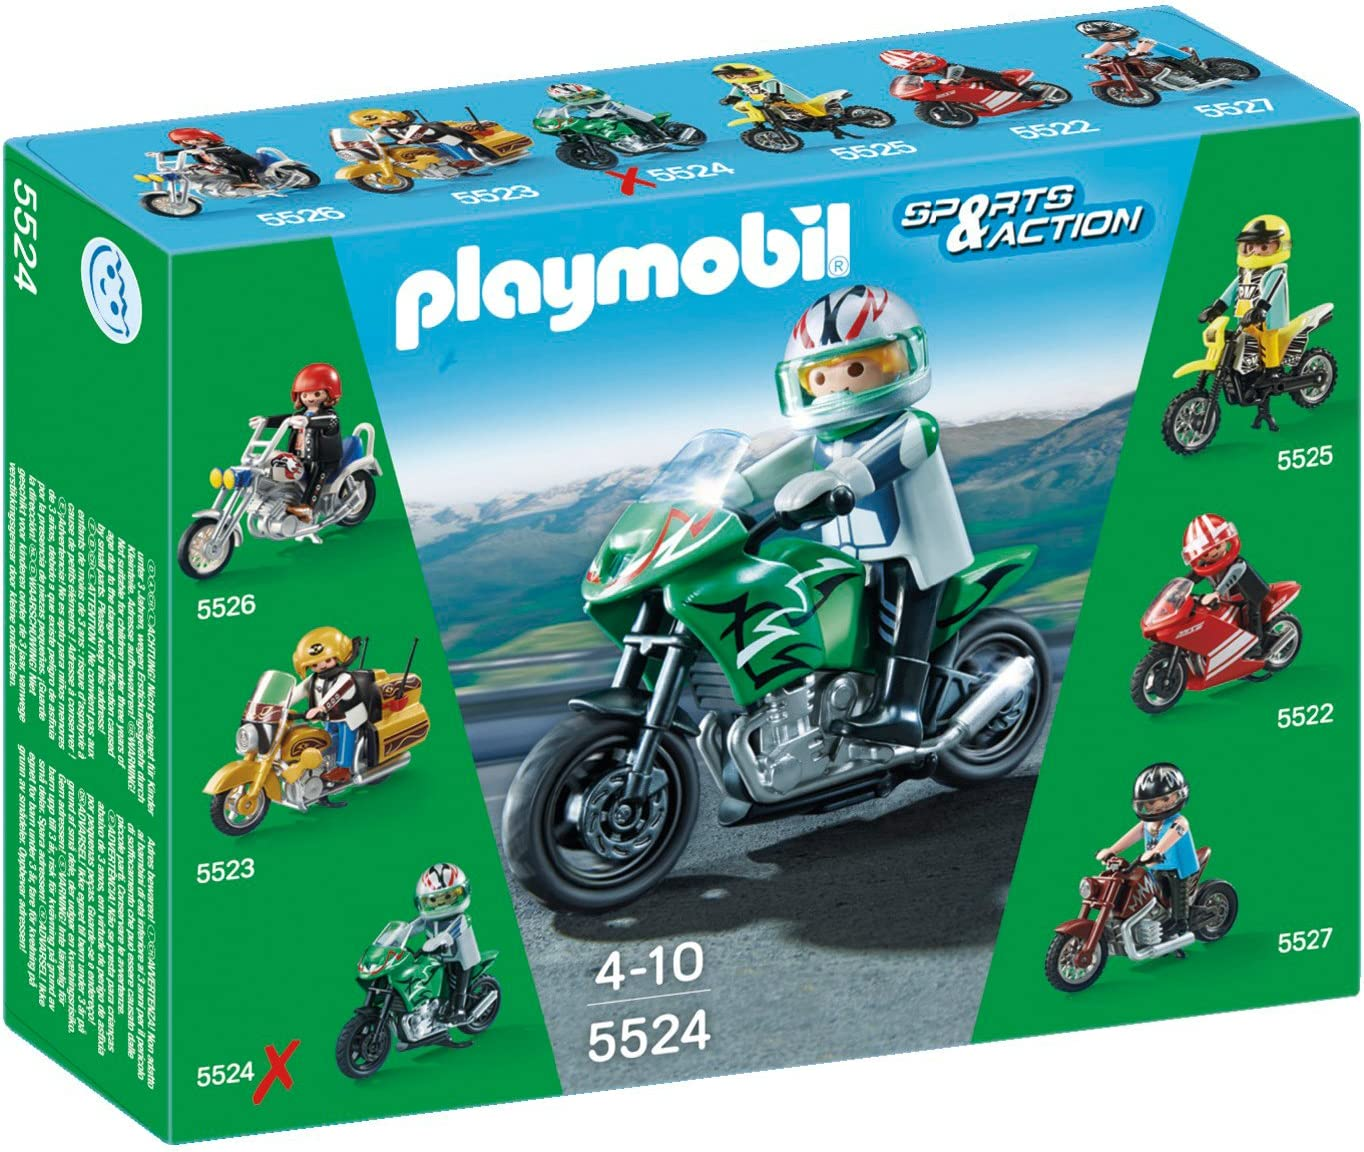 Playmobil Coleccionables - Sports & Action Moto Deportiva Playsets ...